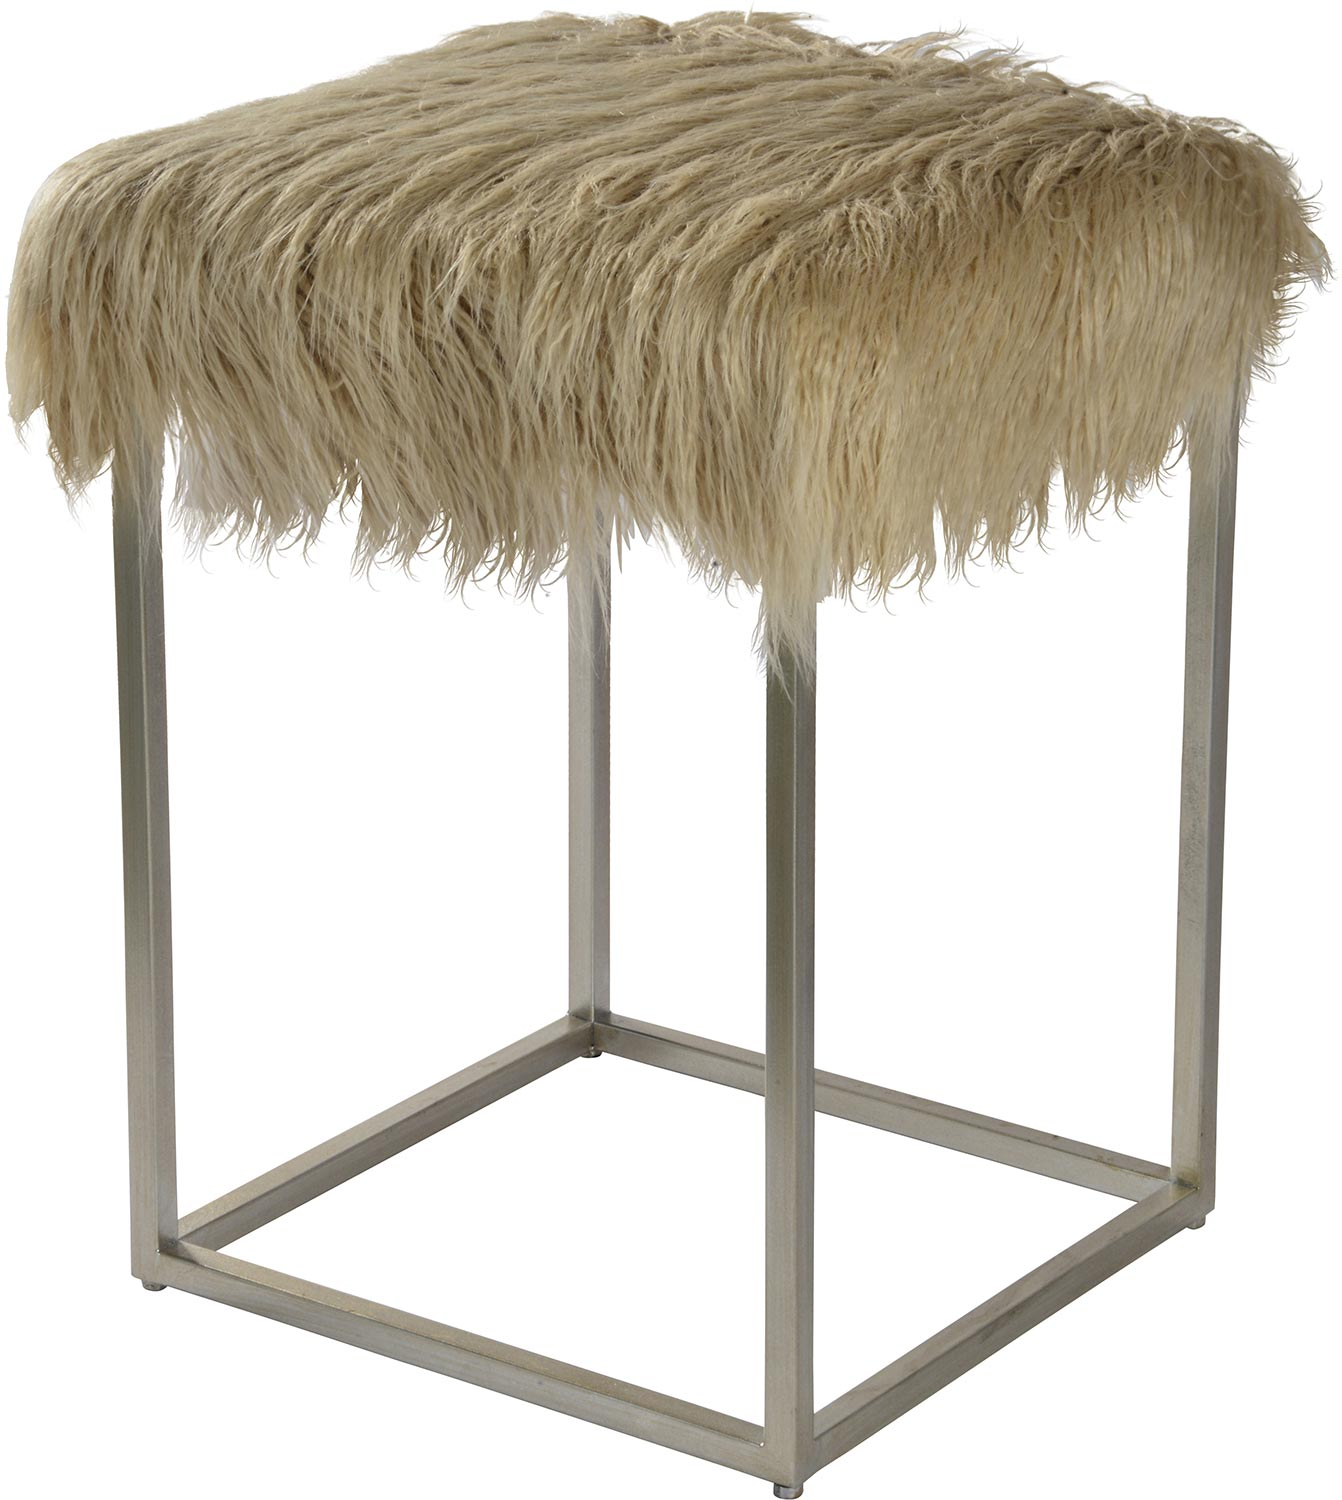 Ren-Wil Sands Stool - Silver Leaf